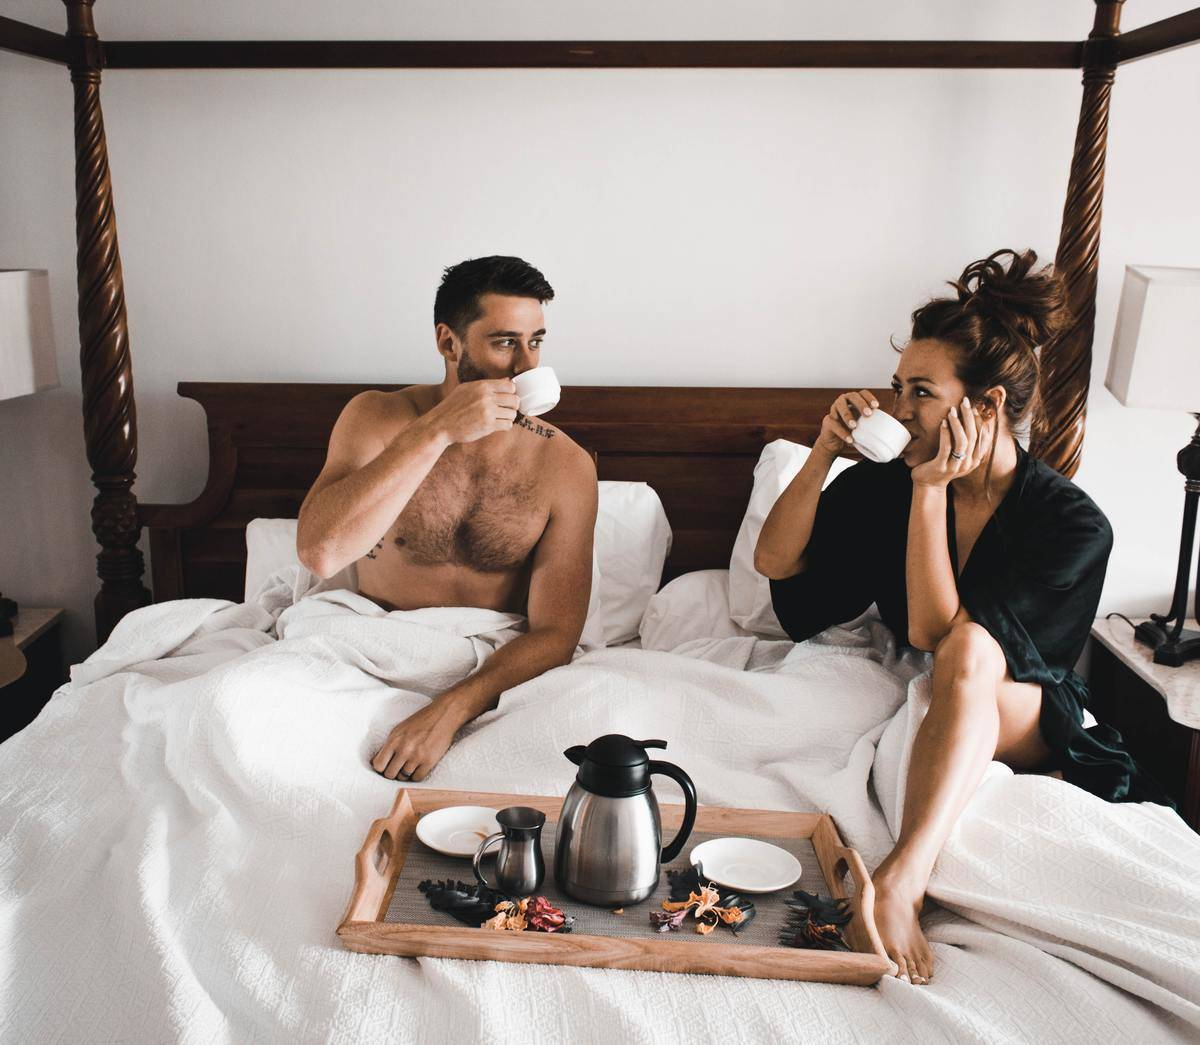 Couple drink coffee in bed; man is shirtless, woman in black robe